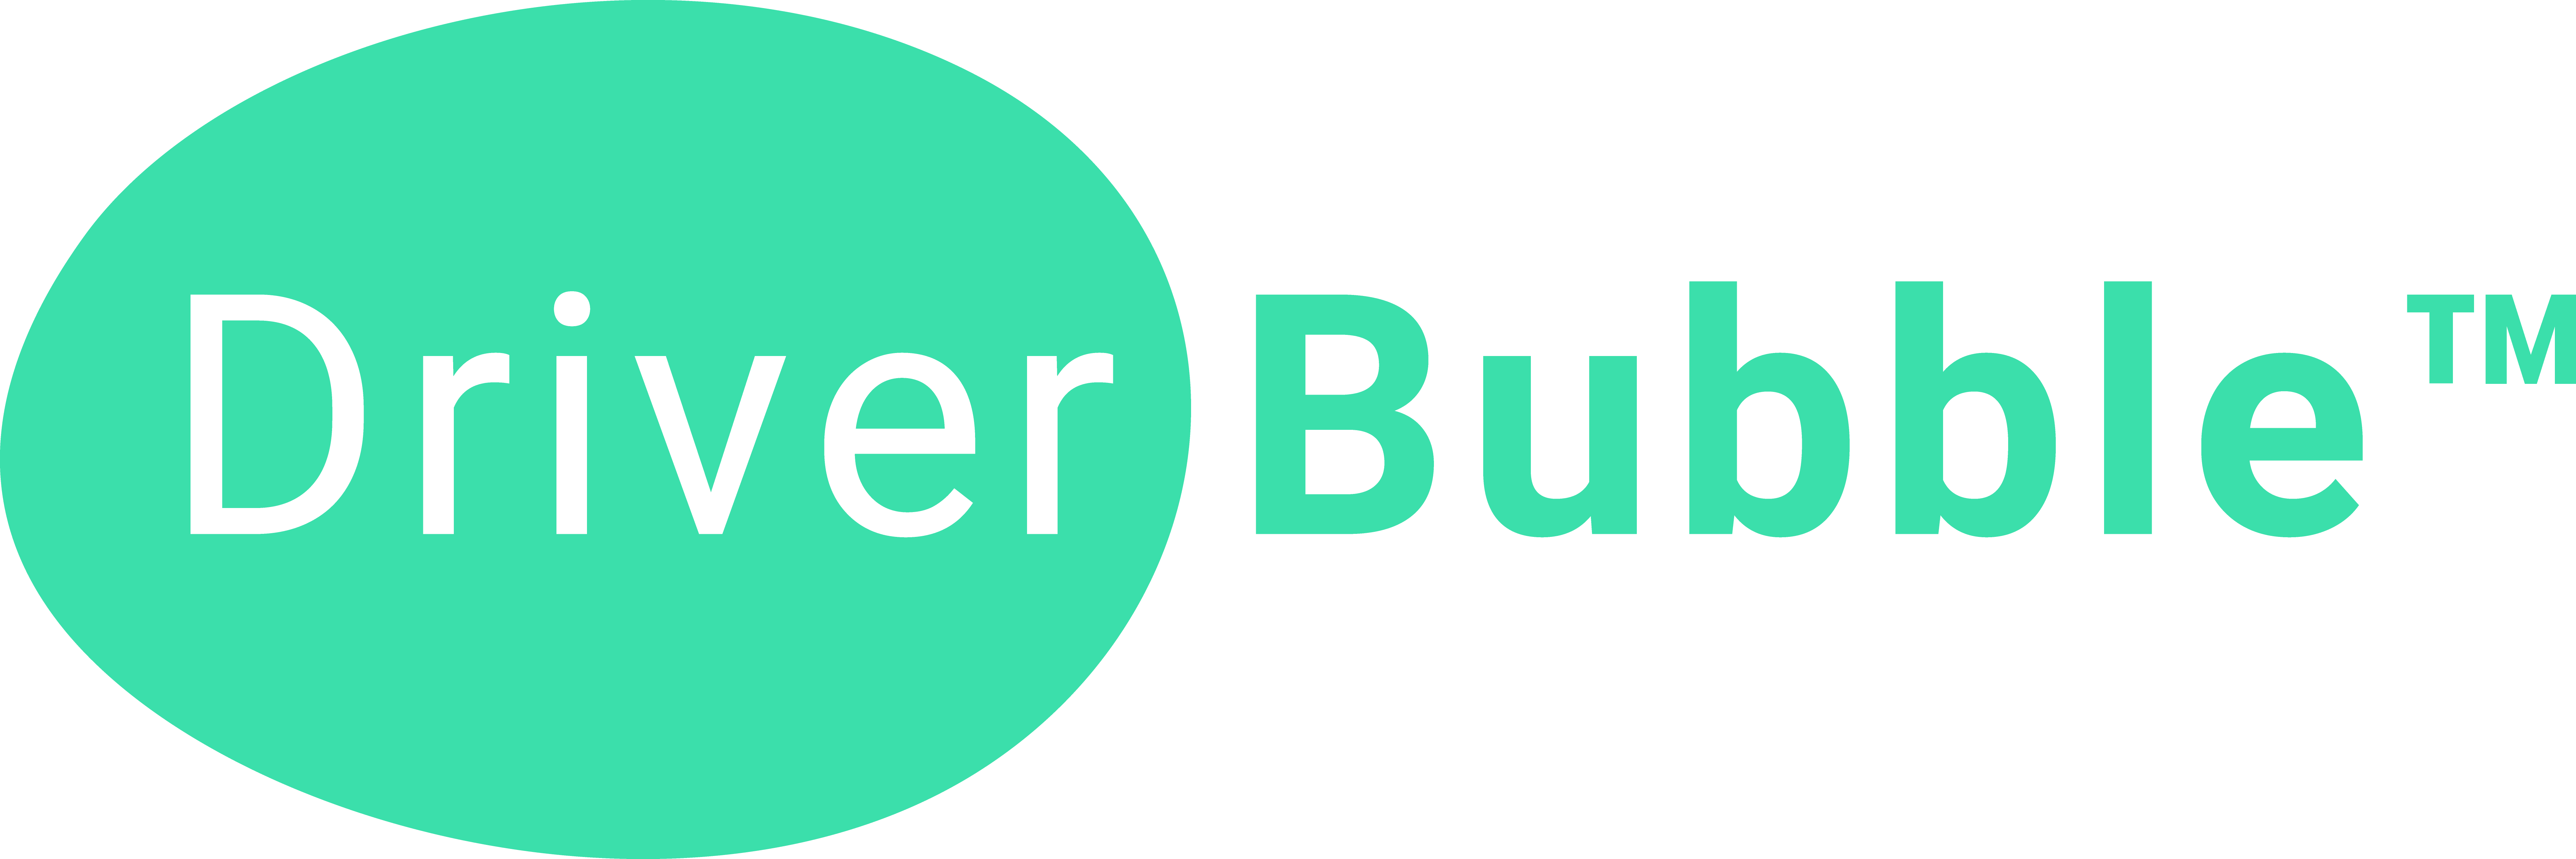 Driver Bubble Logo